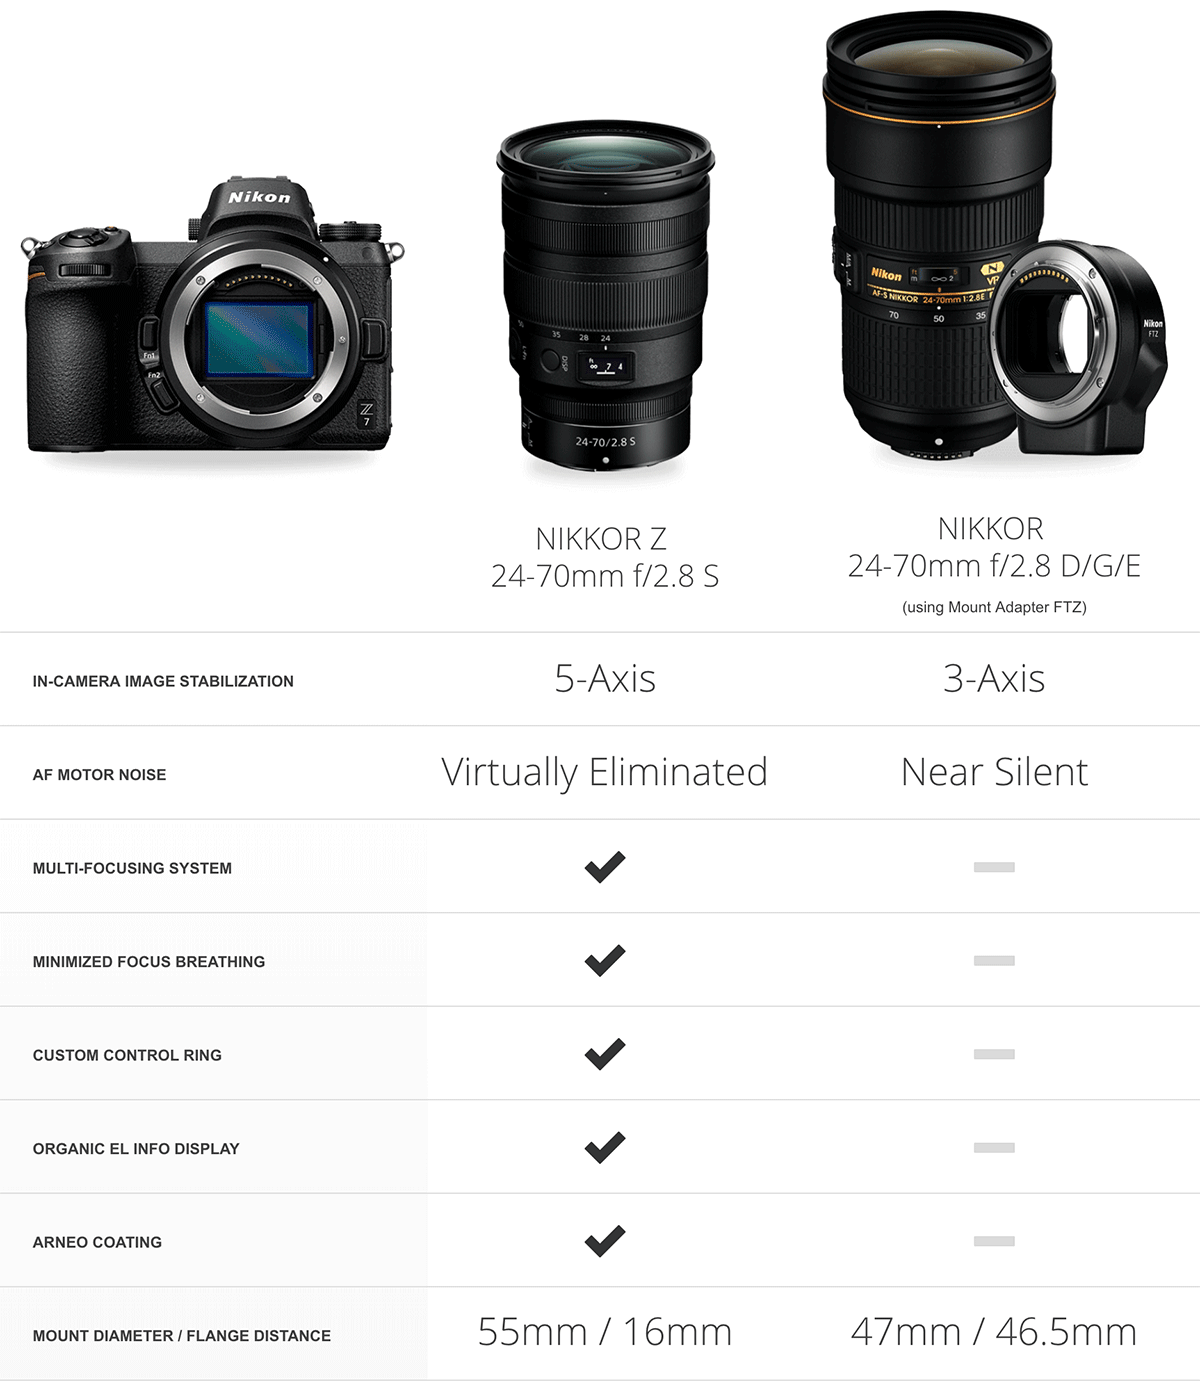 Nikkor Z 24 70mm F 2 8 S Vs Nikkor 24 70mm F 2 8e Ed Vr Specifications Comparison Nikkor Z 24 70mm F 2 8 S Image Stabilization Focal Length Dslr Photography